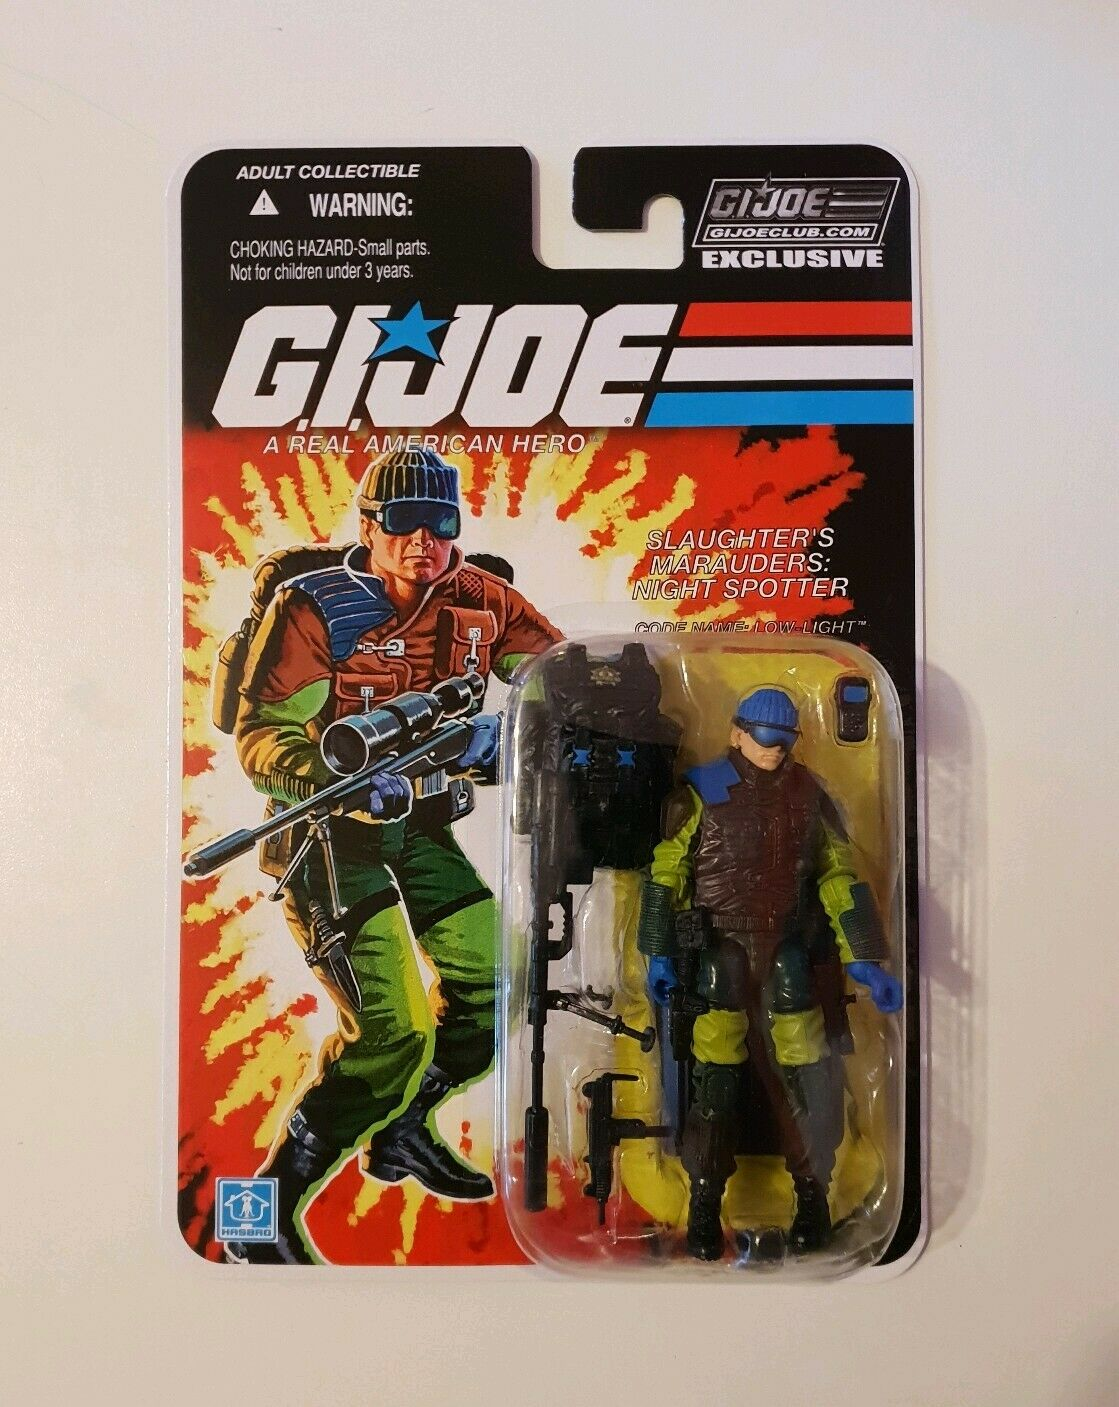 GI JOE FSS COLLECTORS CLUB CLUB CLUB EXCLUSIVE  FINAL 12 SSM LOW-LIGHT 2019 7dcb33